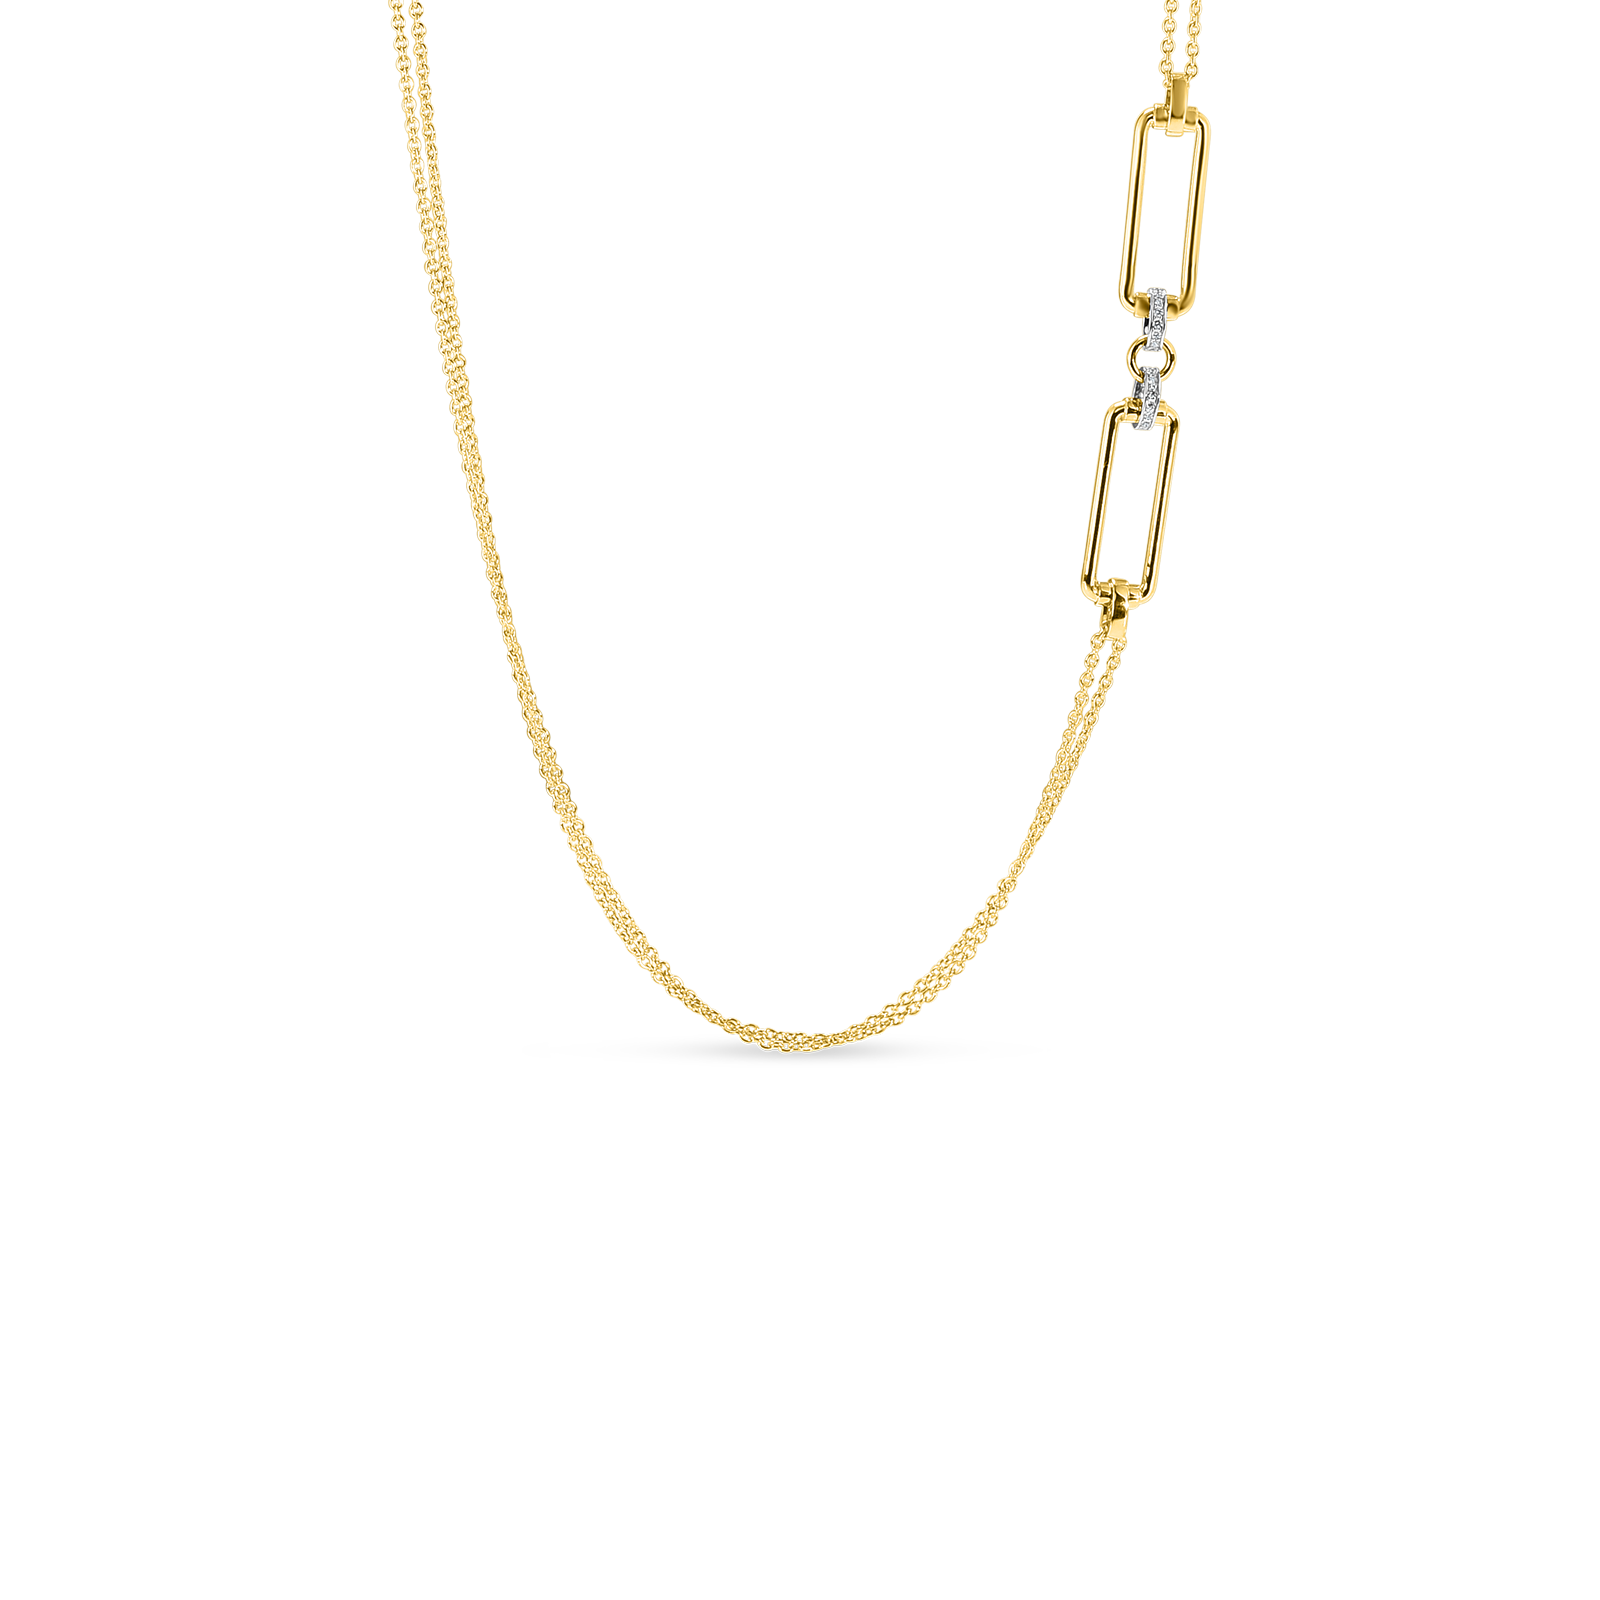 18k long chain with rectangular elements & diamond accent